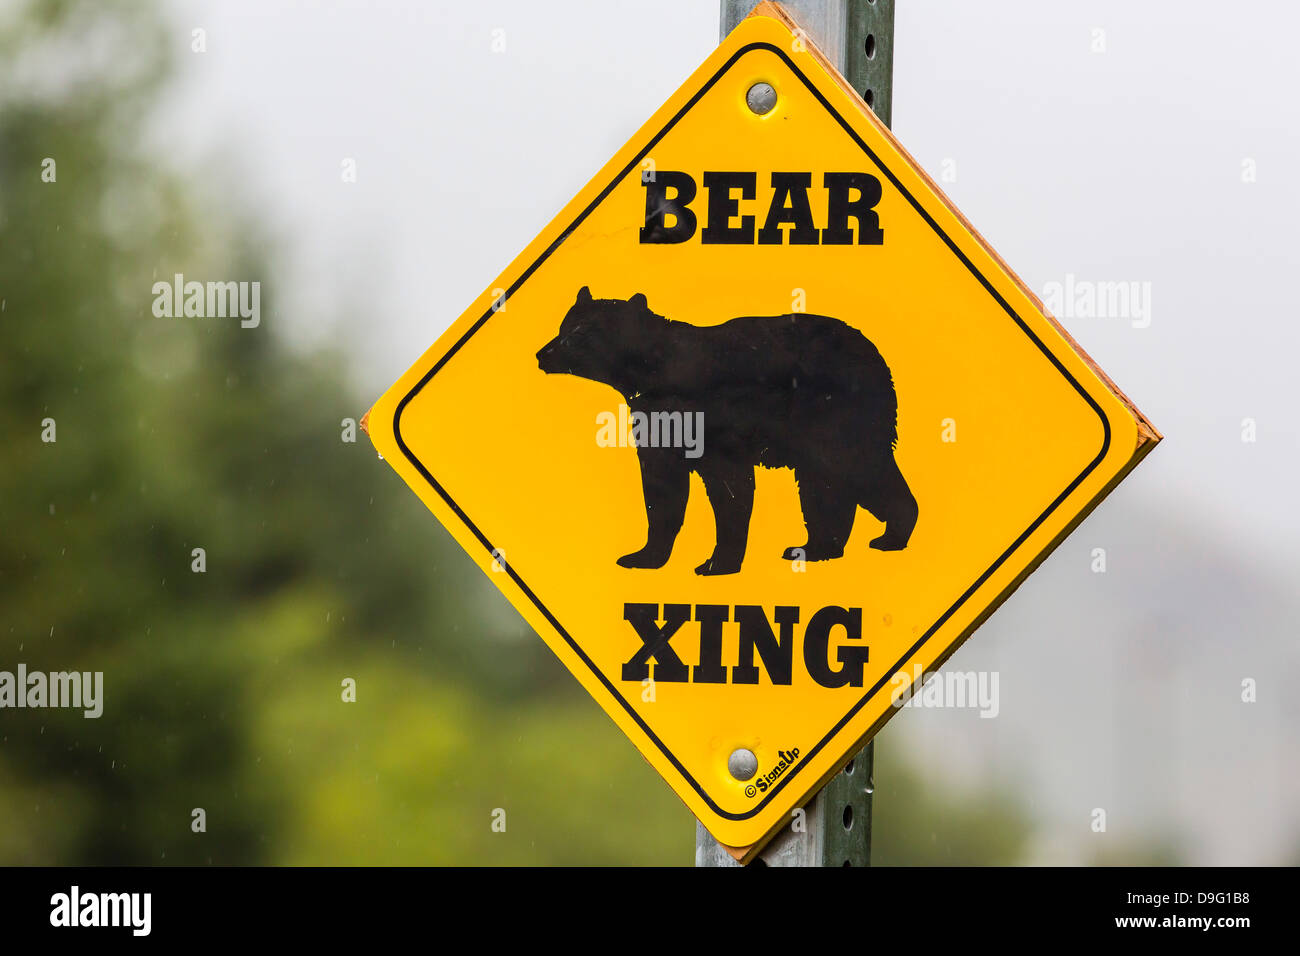 Road sign for bear crossing in Juneau, Southeast Alaska, USA - Stock Image